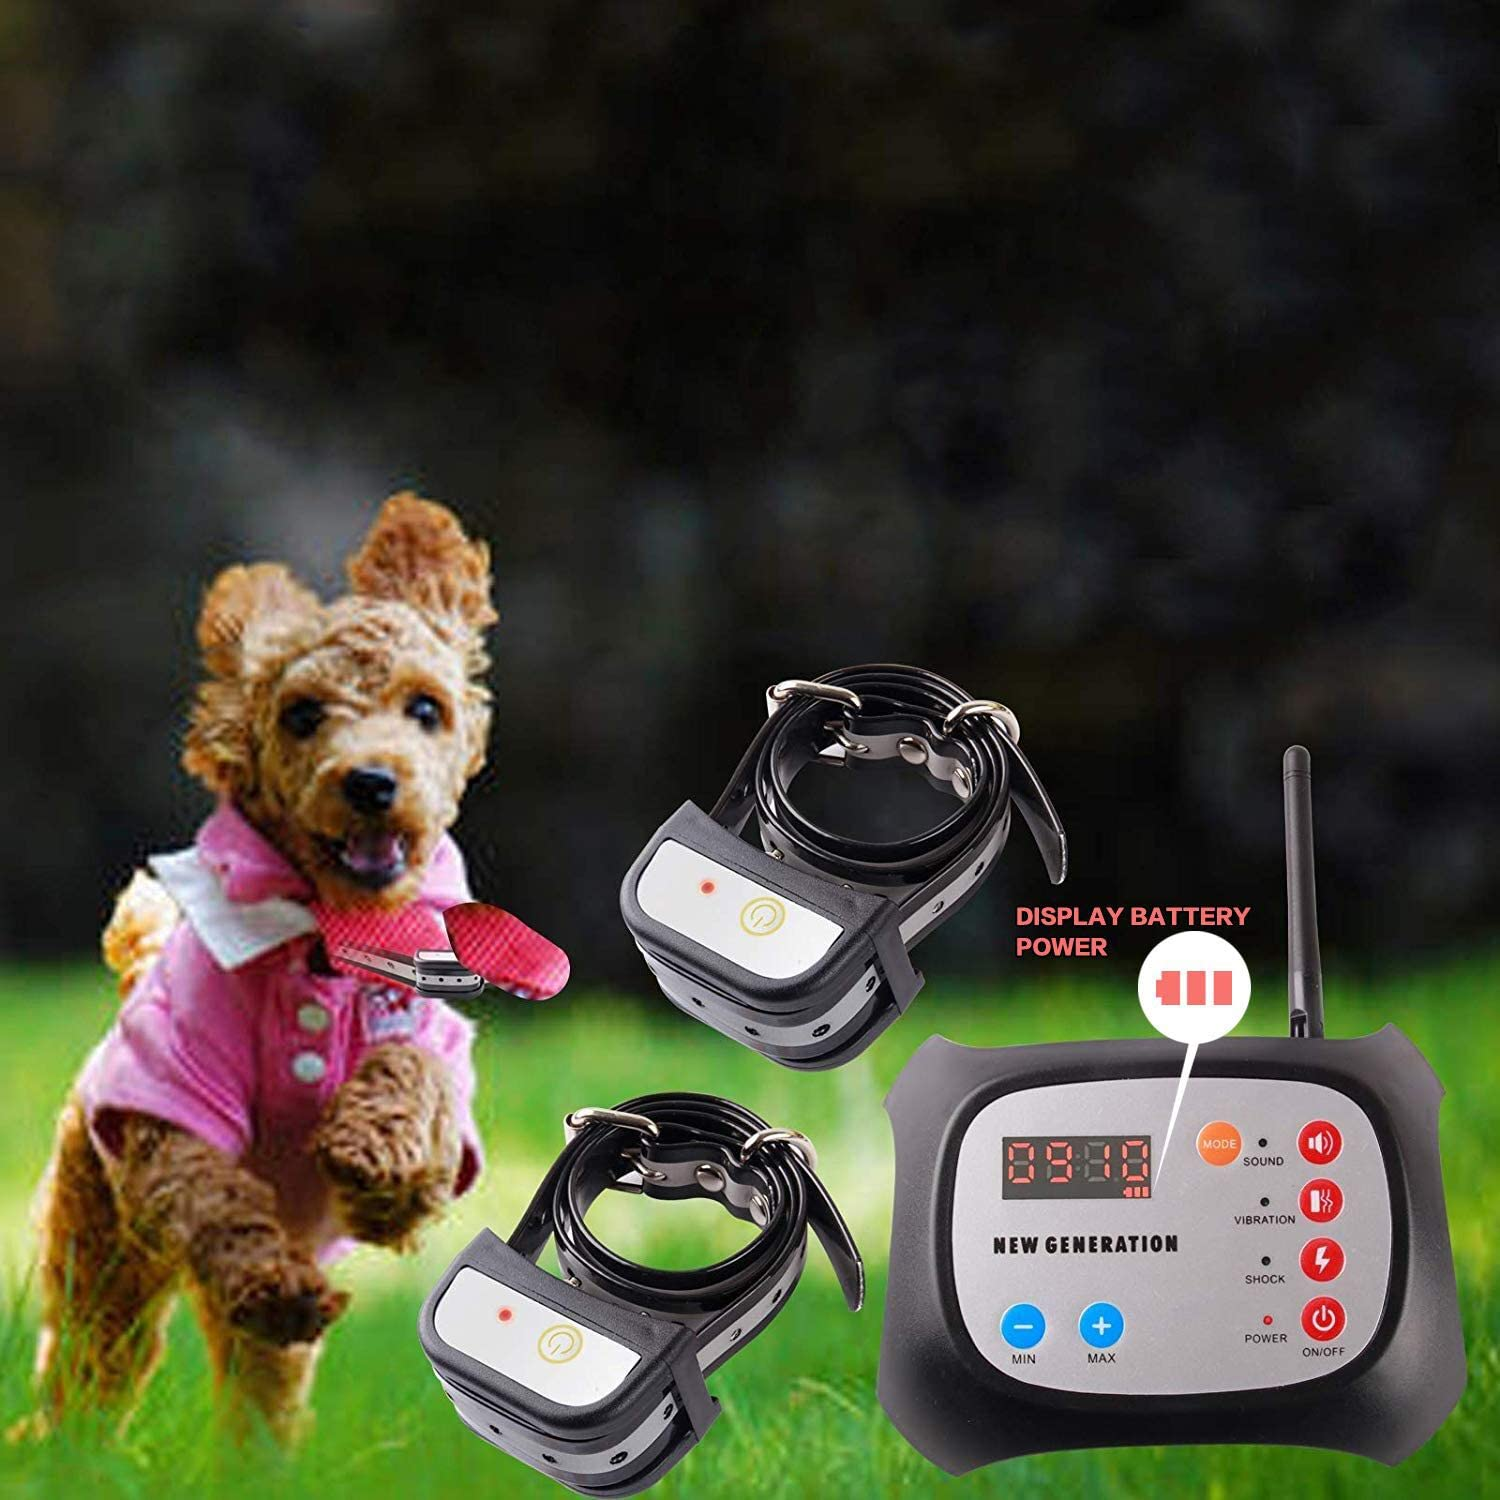 JUSTPET Wireless Dog Fence Electric & Training Collar 2-in-1 System, Adjustable Control Range 1000 Feet, Wireless Fence Dog Boundary Container, Waterproof Rechargeable Collar Receiver